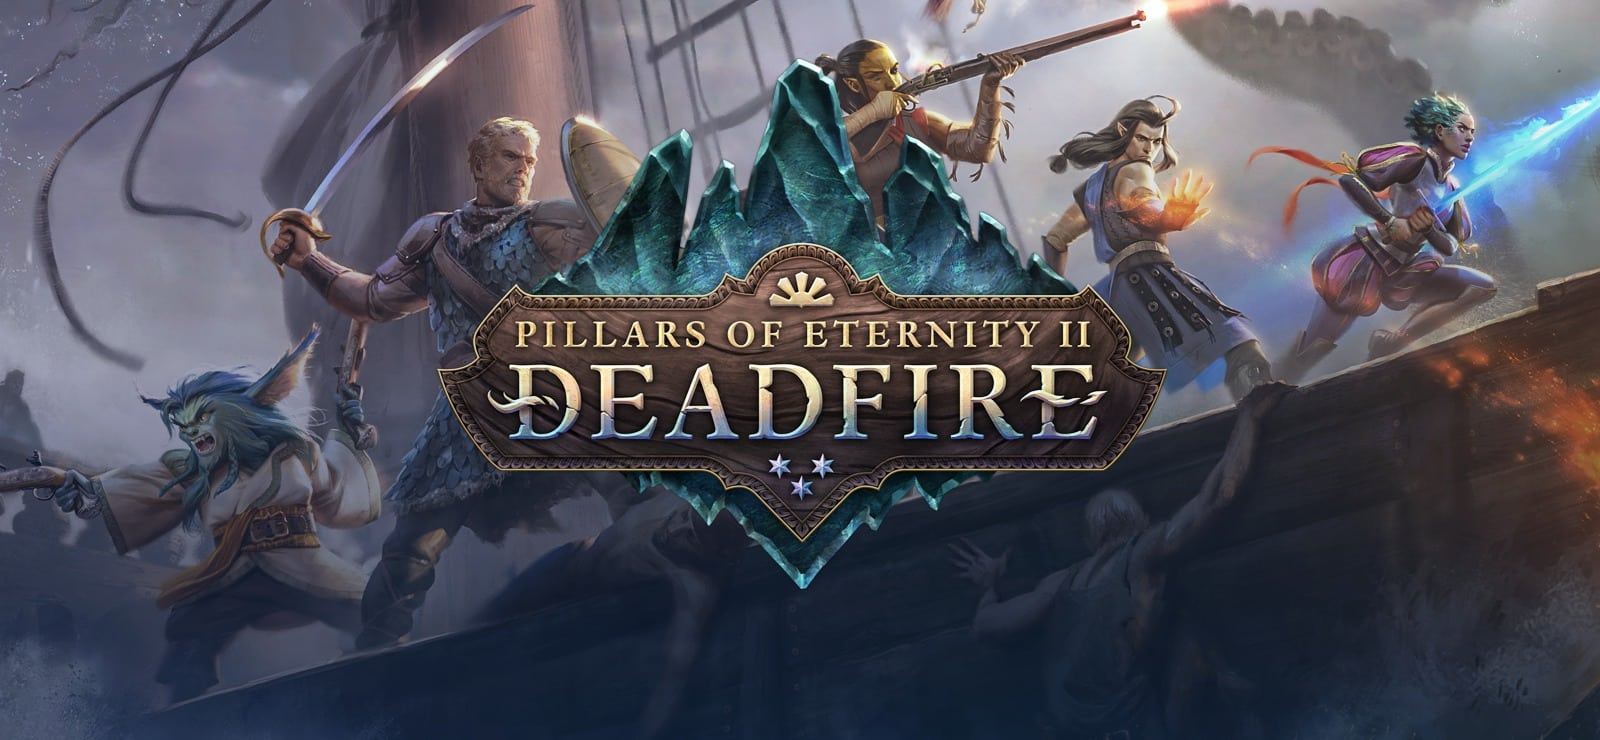 pillars of eternity ii deadfire 攻略